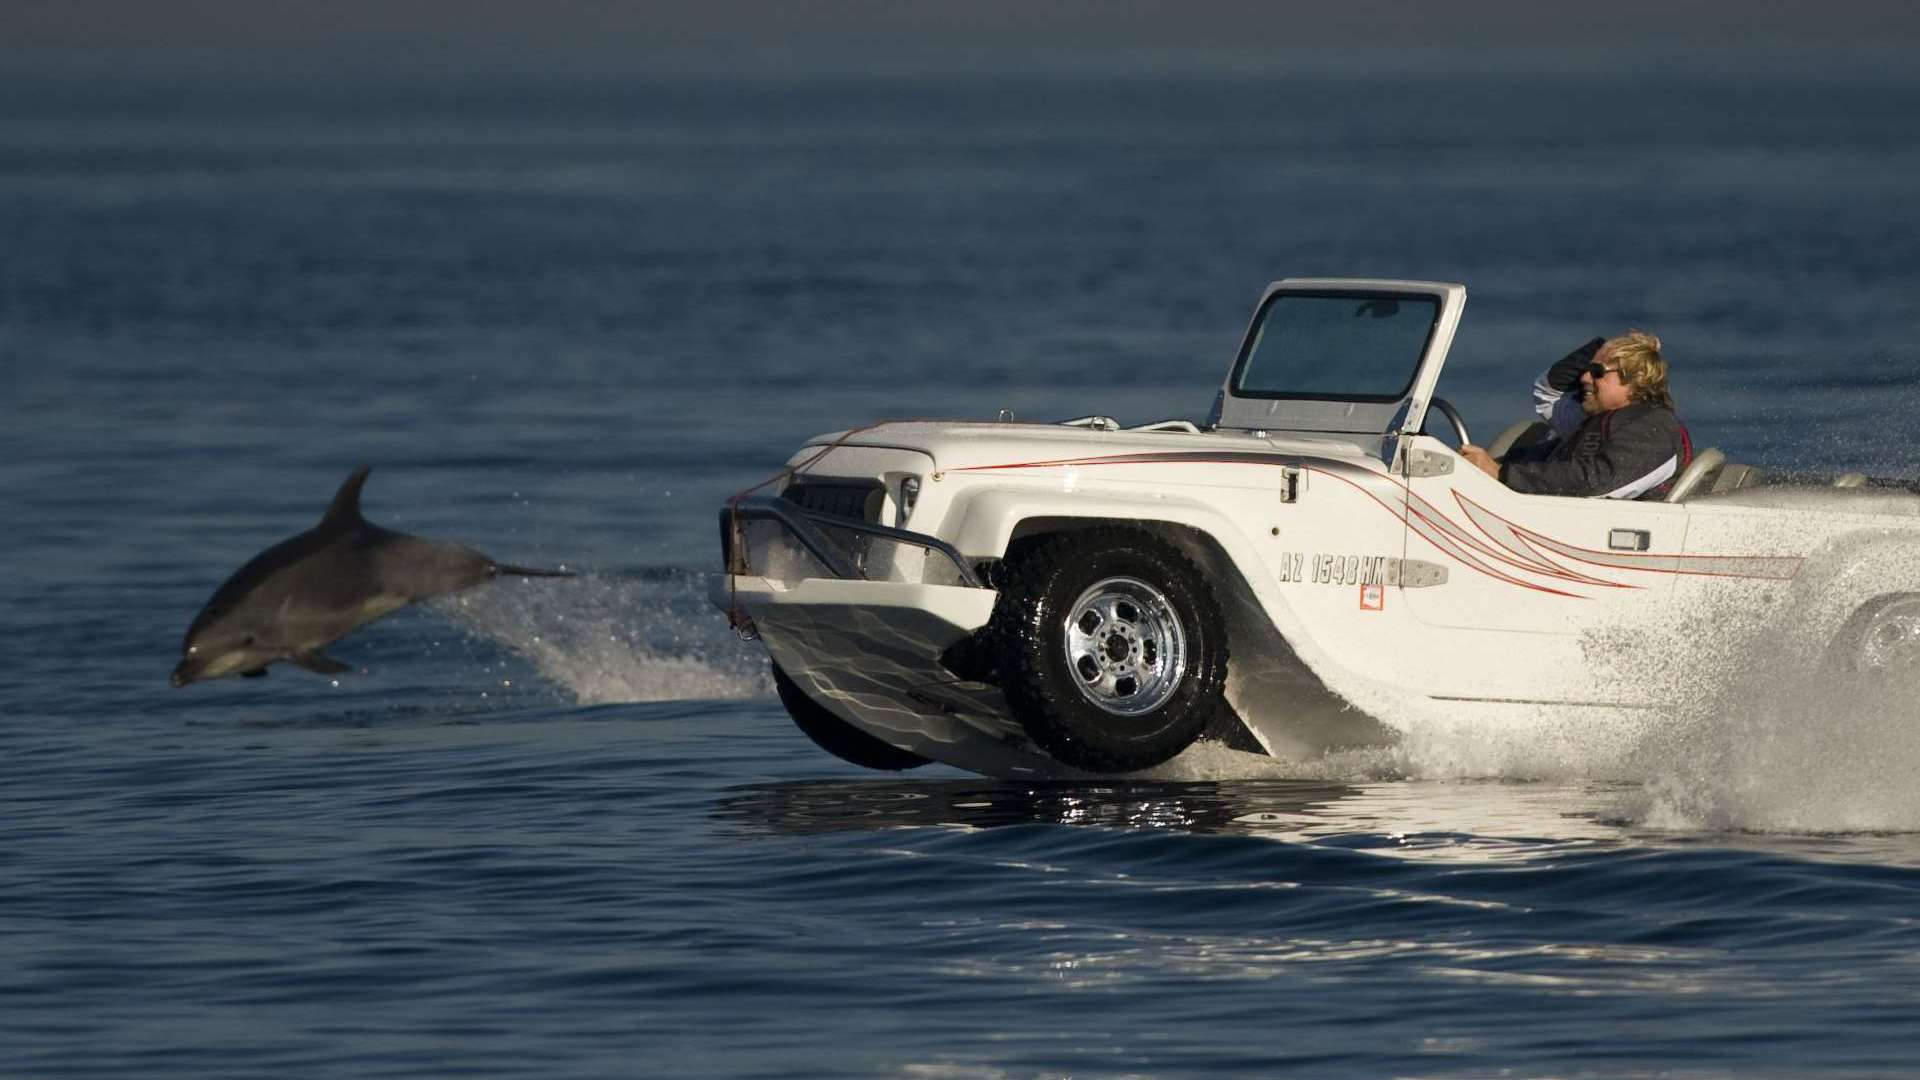 WaterCar amphibious vehicles a white jeep on the water with a dolphin